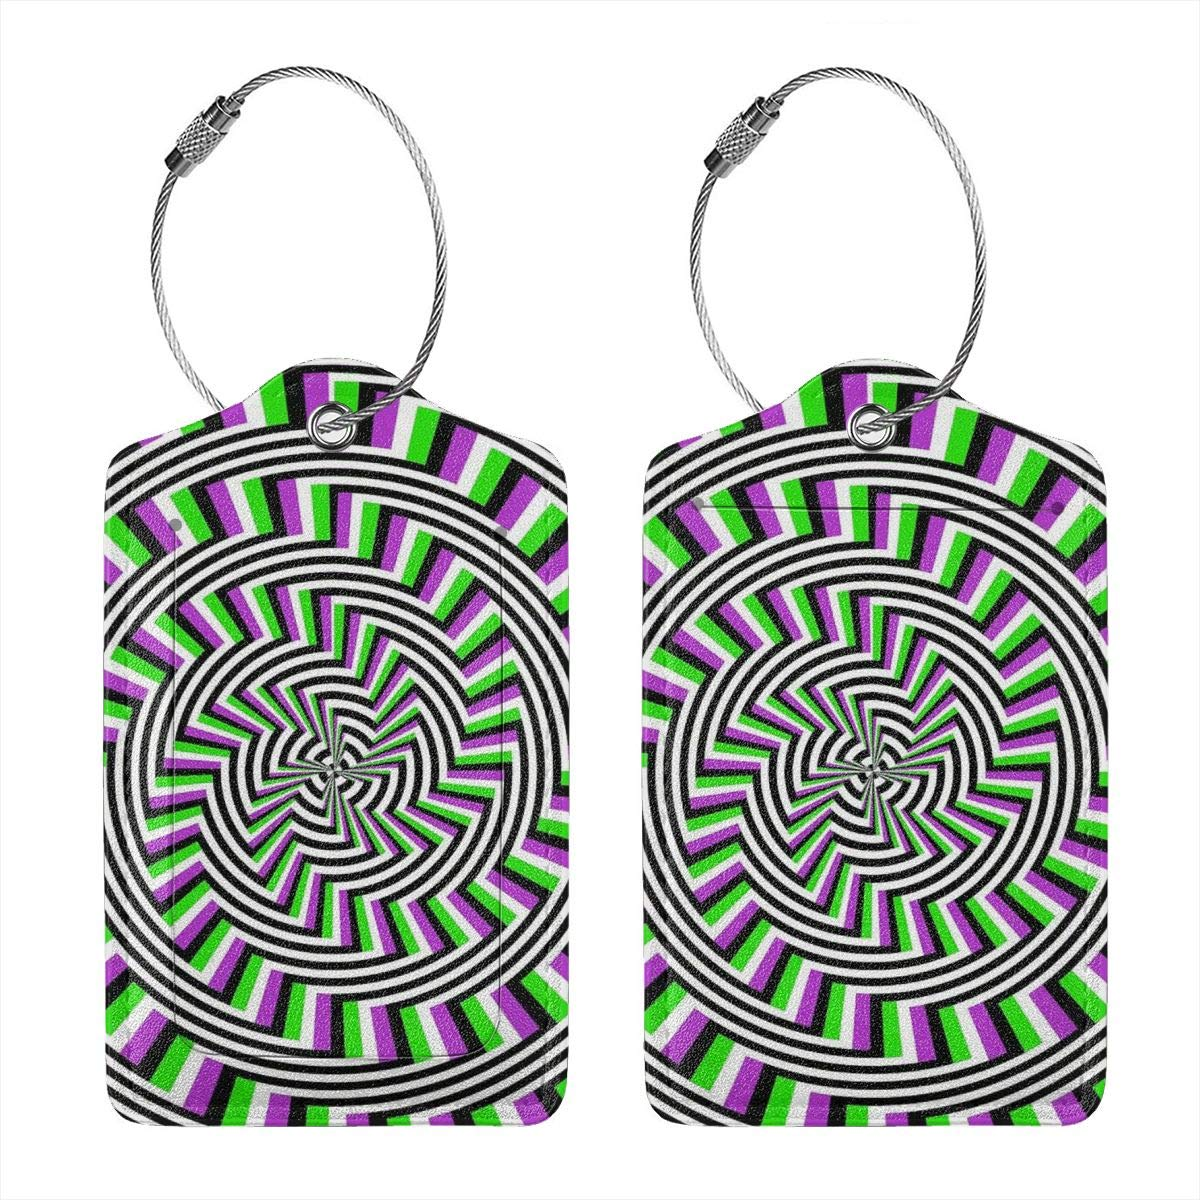 Leather Luggage Tag Self-Moving Unspirals Luggage Tags For Suitcase Travel Lover Gifts For Men Women 4 PCS